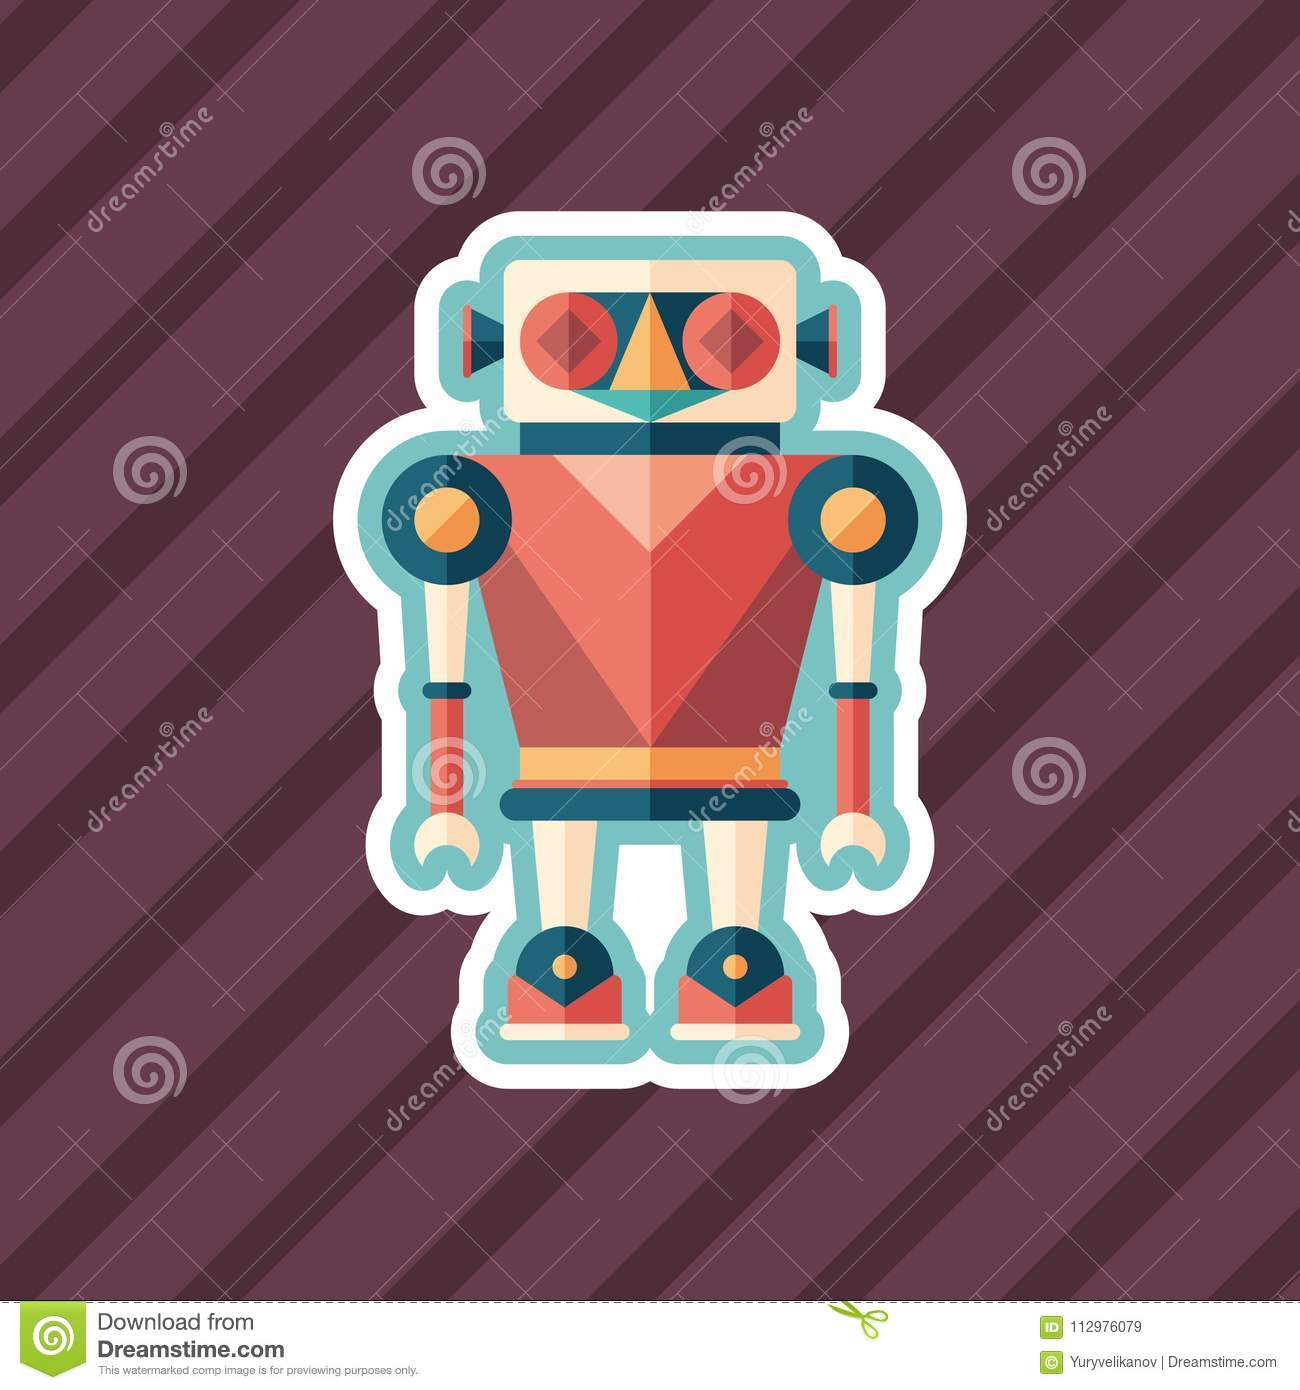 Robot illusionist sticker flat icon with color background.